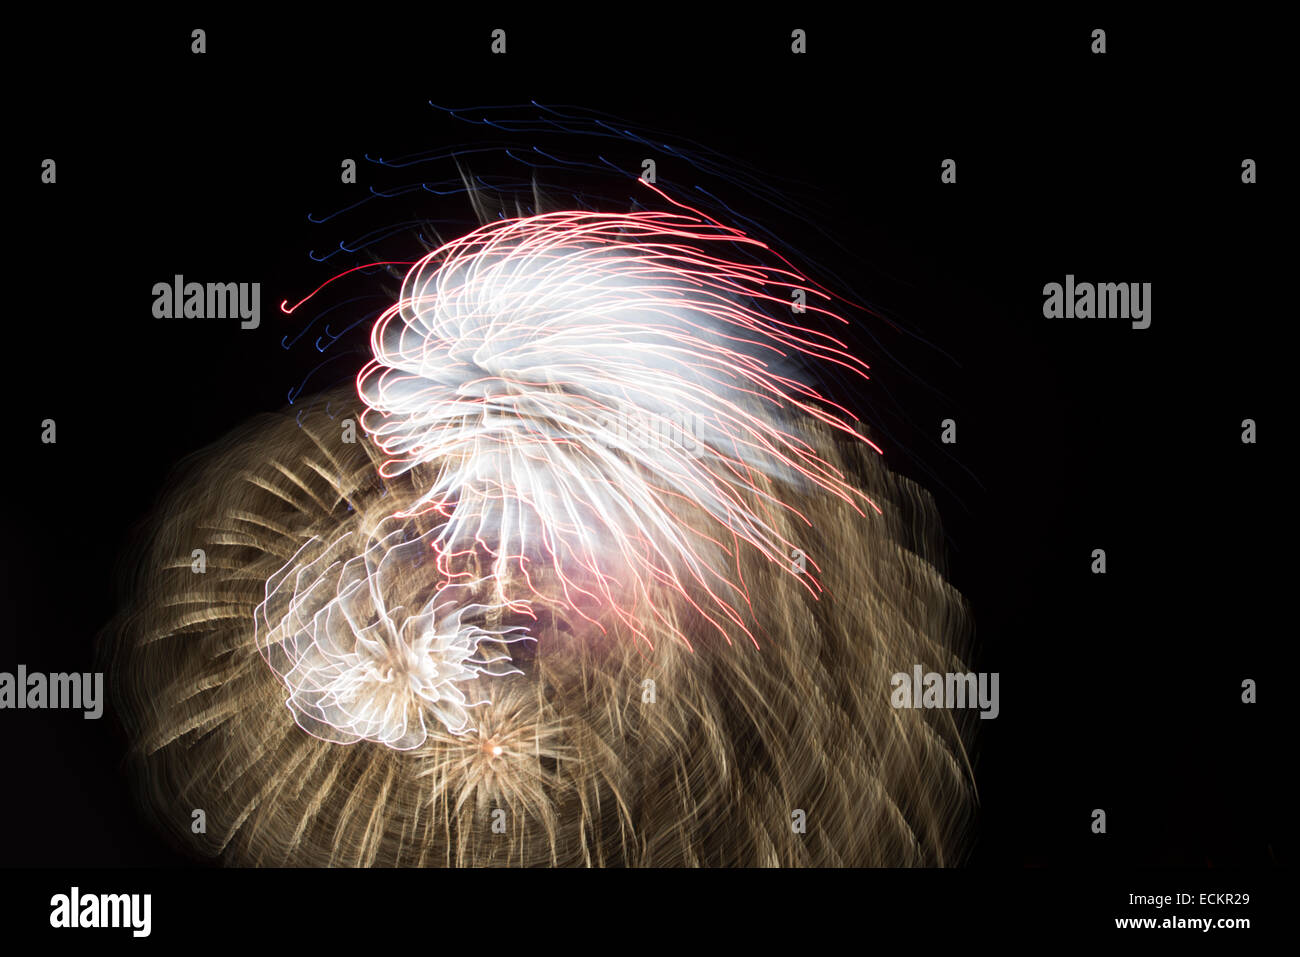 Firework display with blurred motion - Stock Image